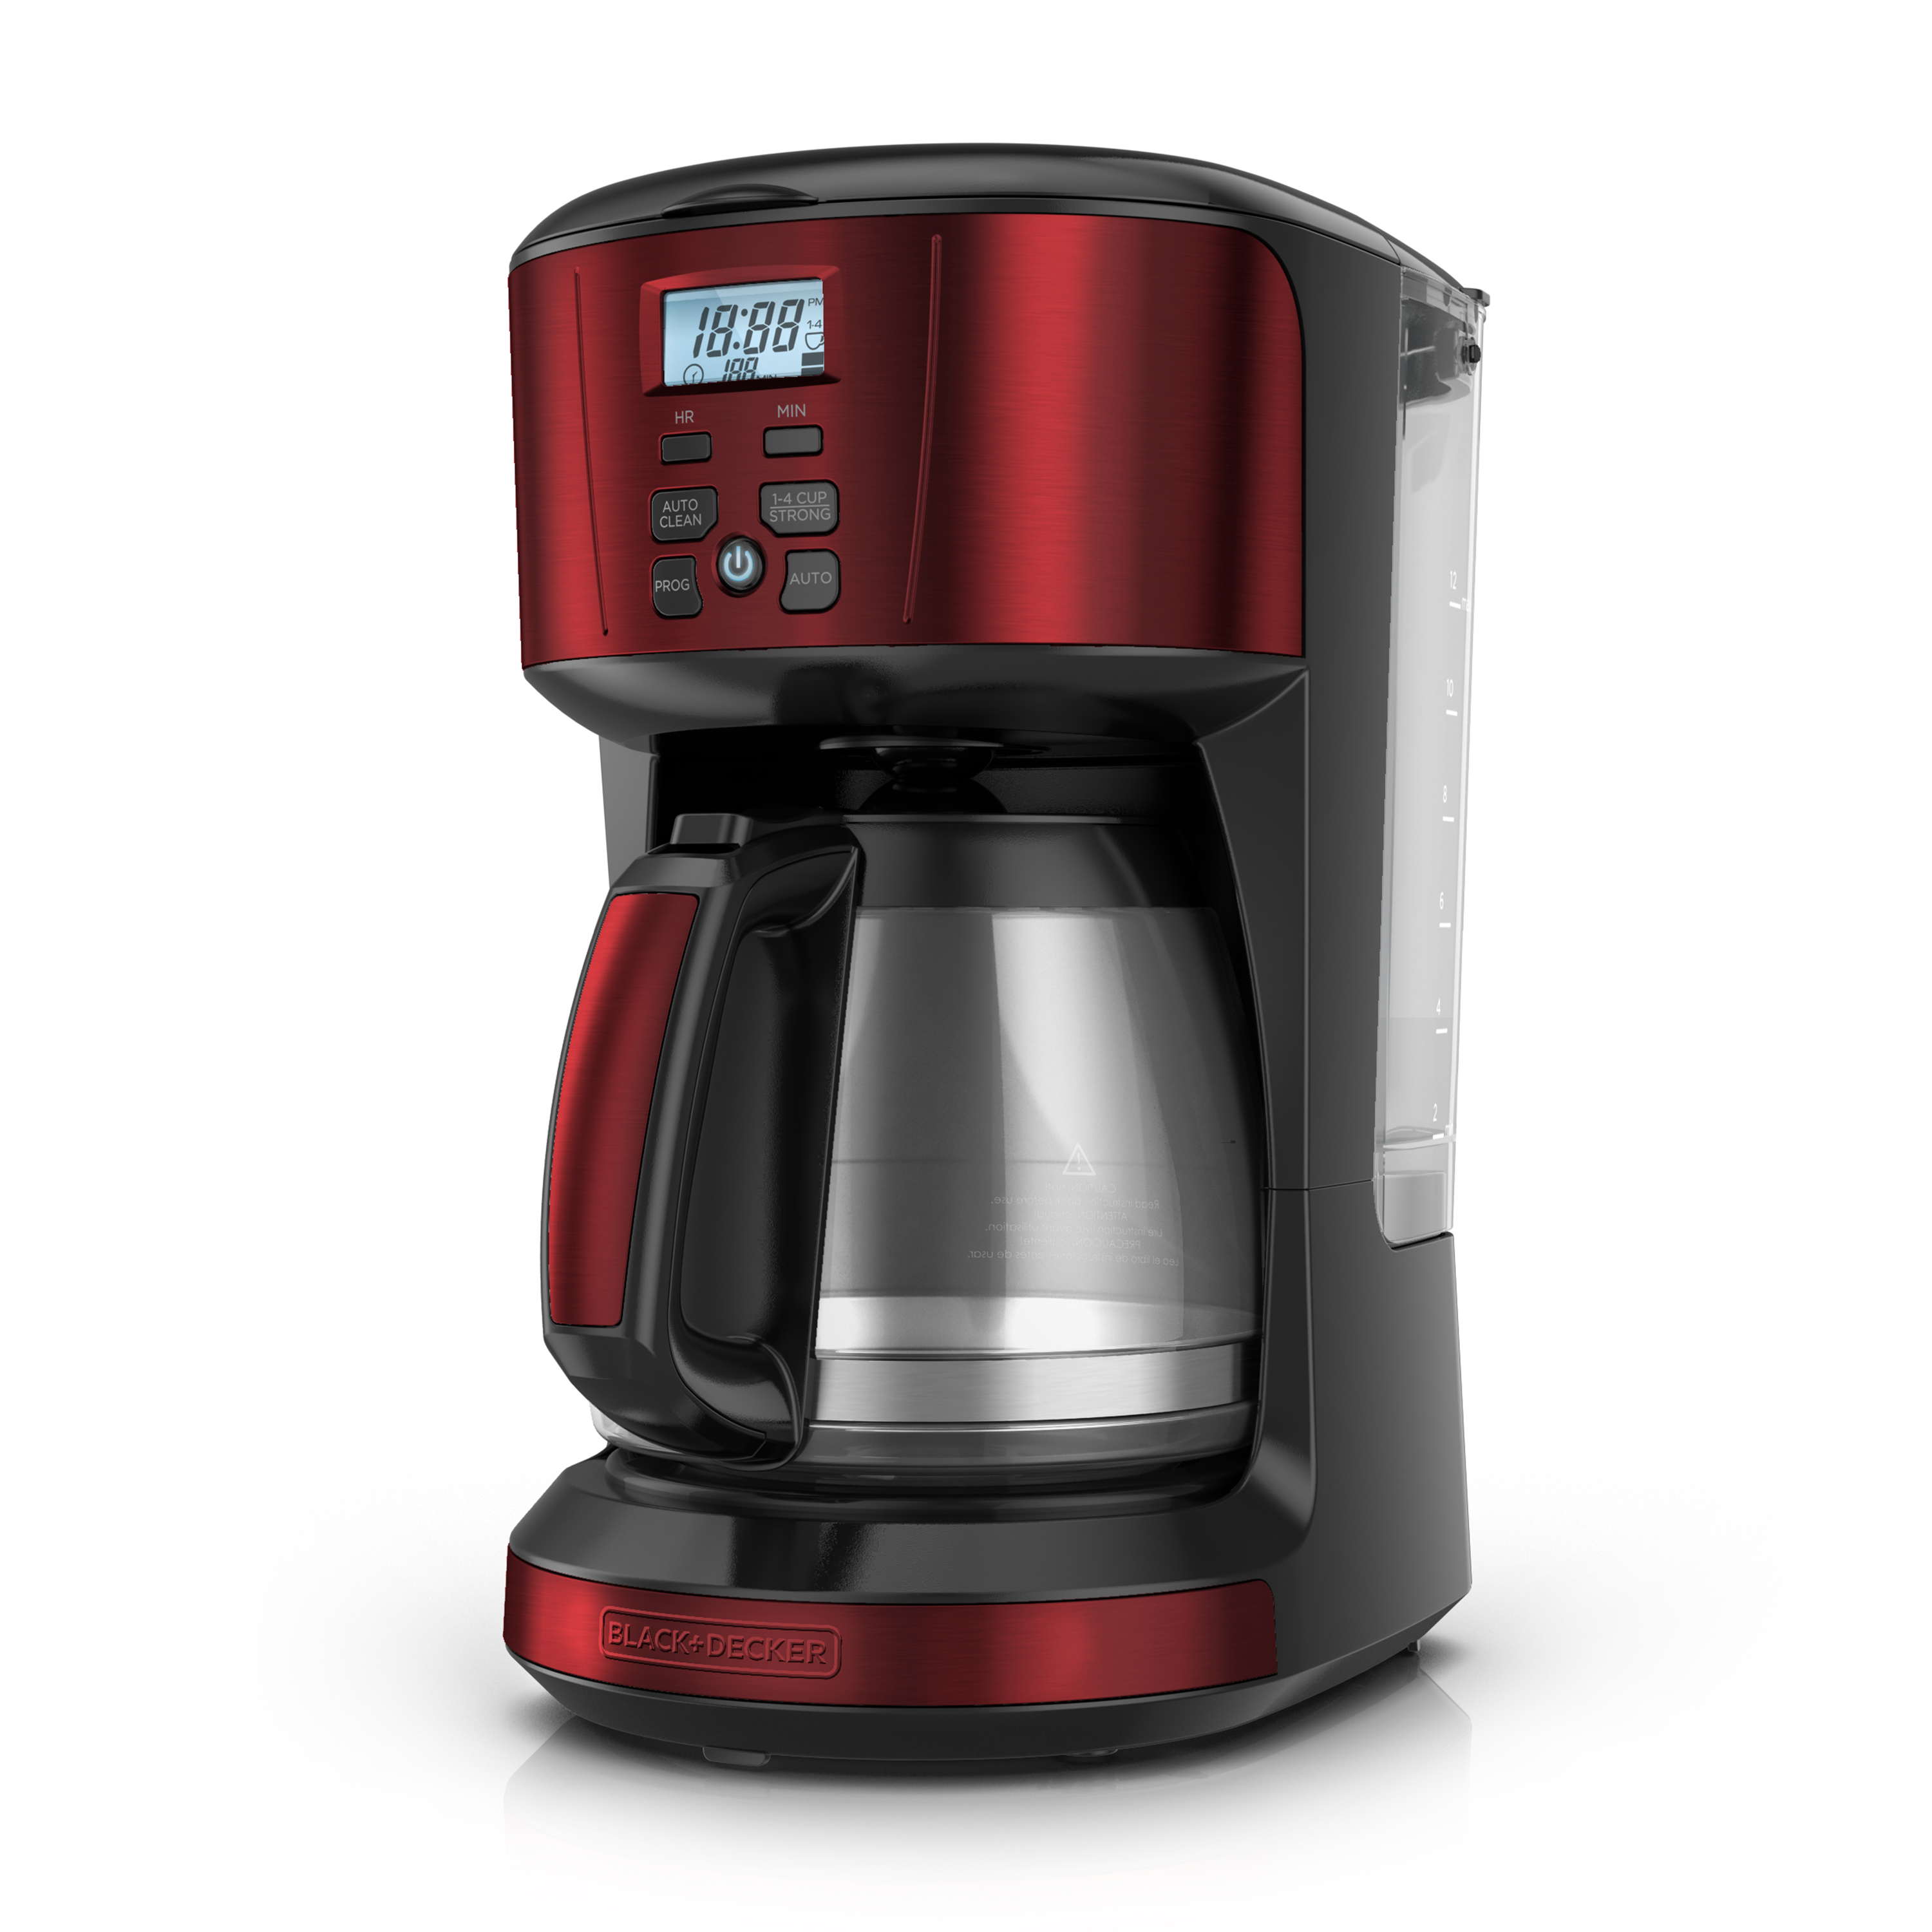 Black & Decker 12-Cup Programmable Coffee Maker with Removable Water Reservoir, Red, CM4110R by BLACK DECKER